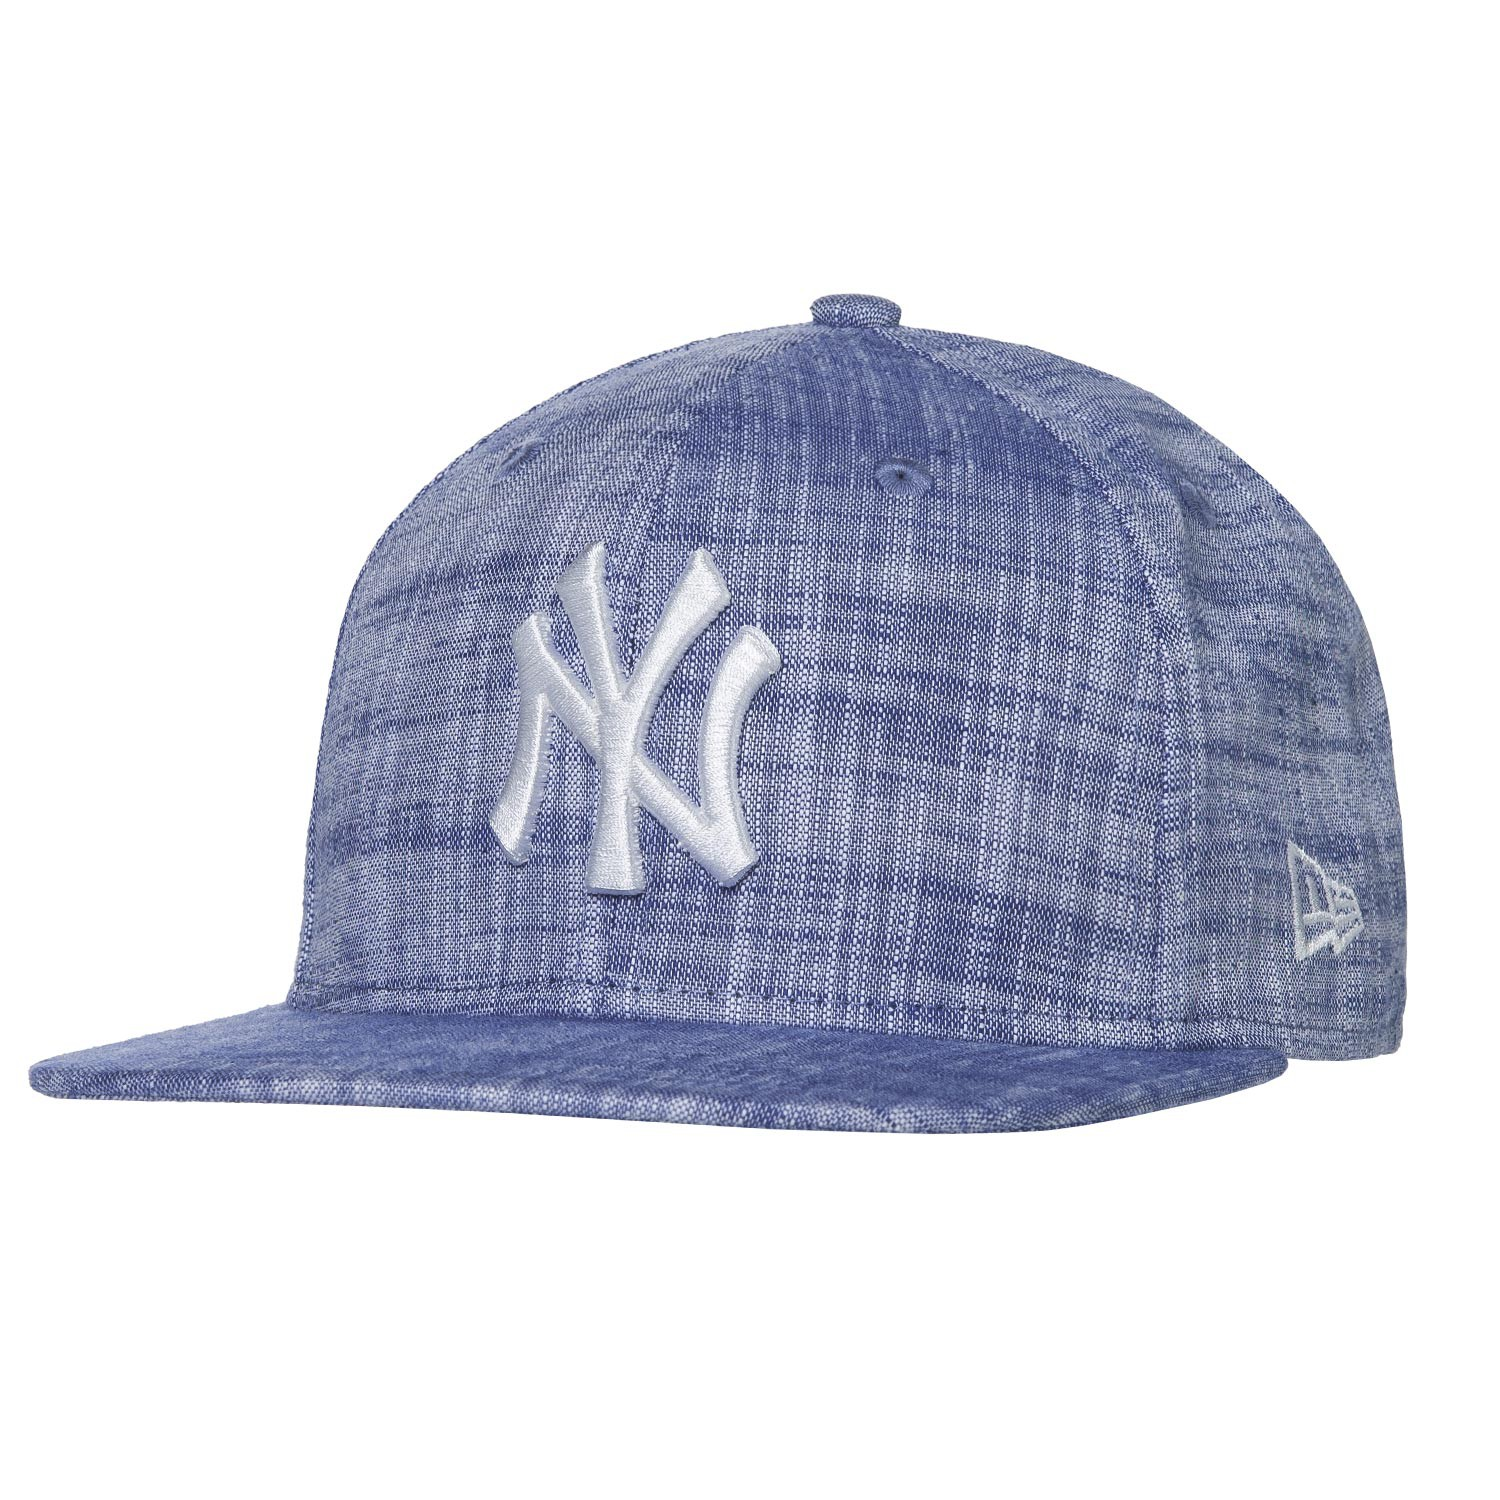 Kšiltovka New Era New York Yankees 9Fifty Mlb Cha. lry